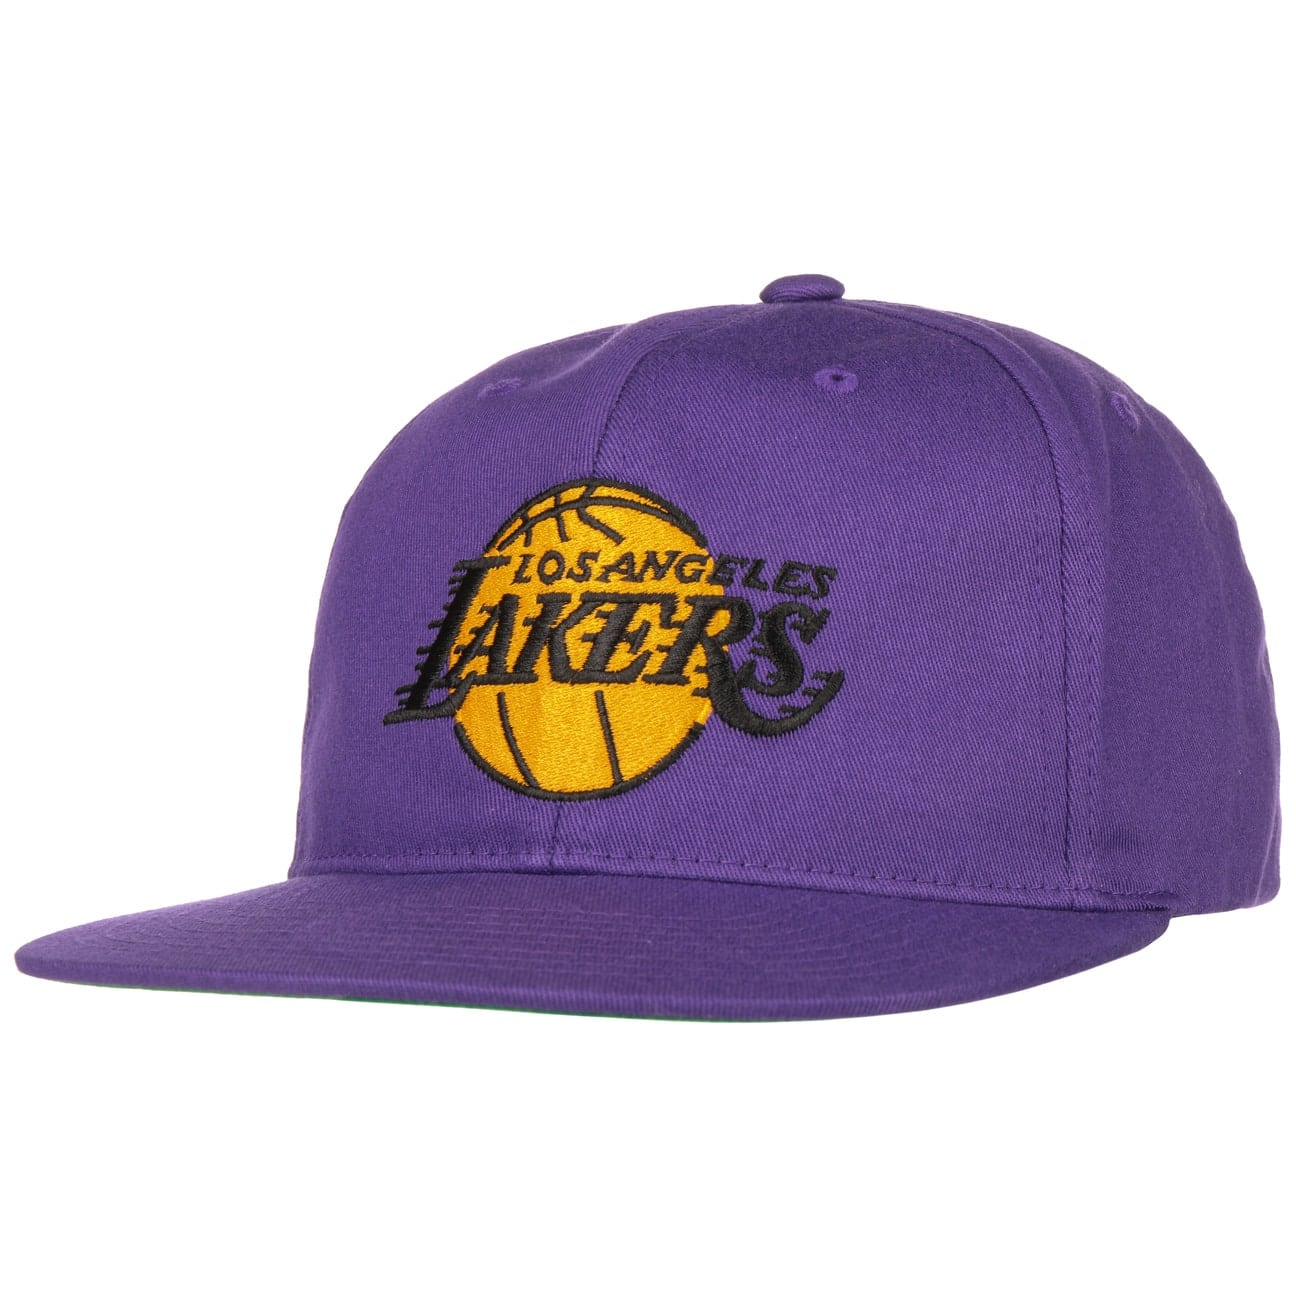 Casquette Deadstock Lakers by Mitchell & Ness  casquette snapback